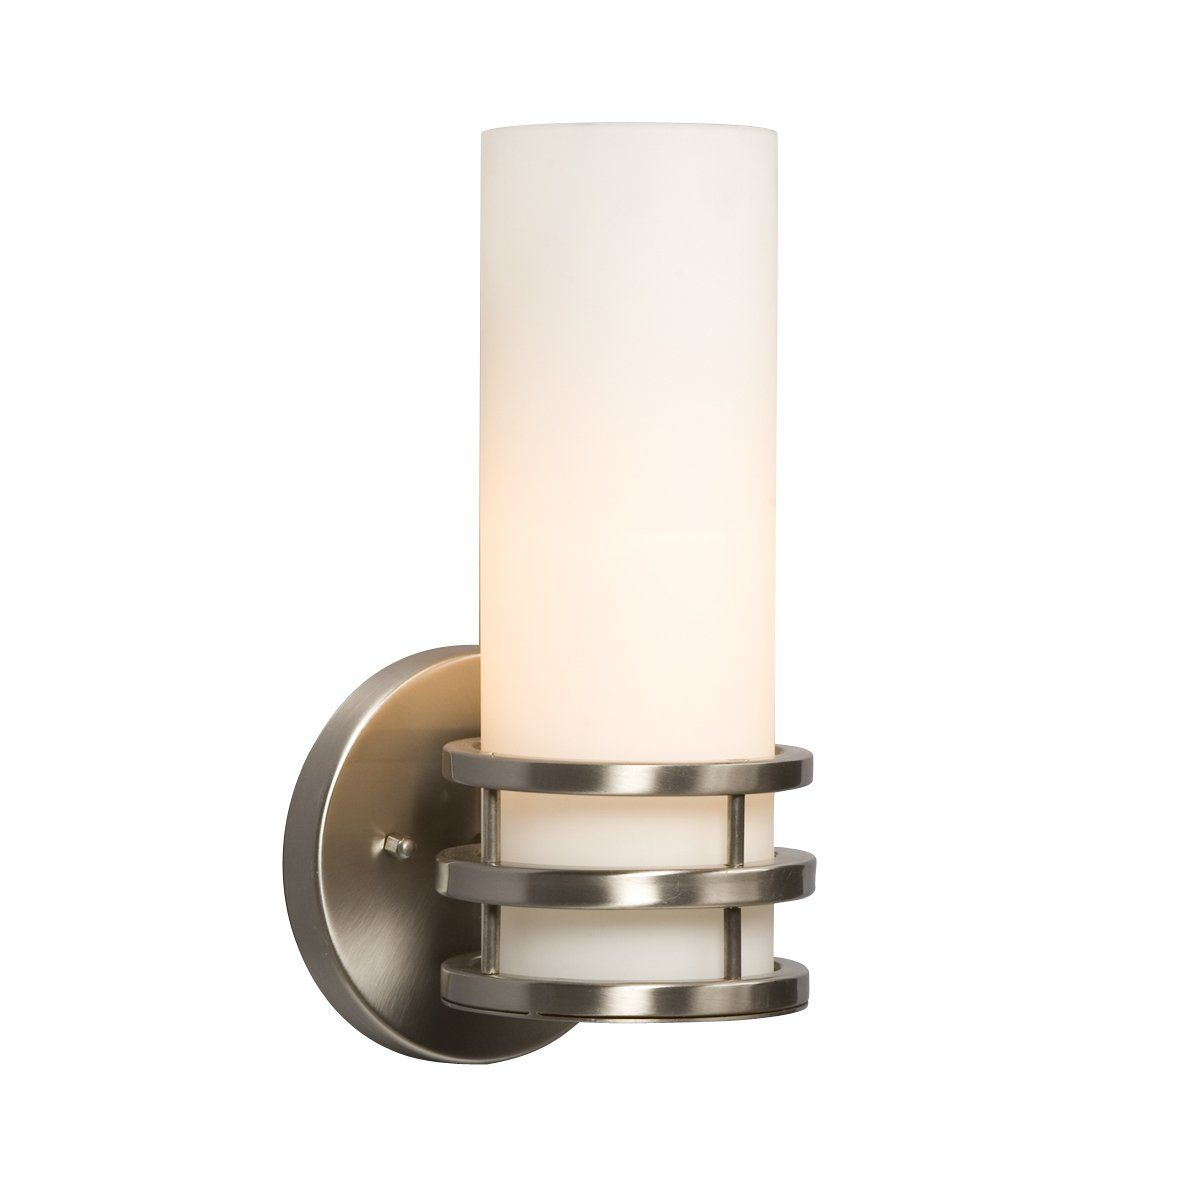 Pic On Shop Galaxy Lighting Avalon Wall Sconce Bathroom Light at Lowe us Canada